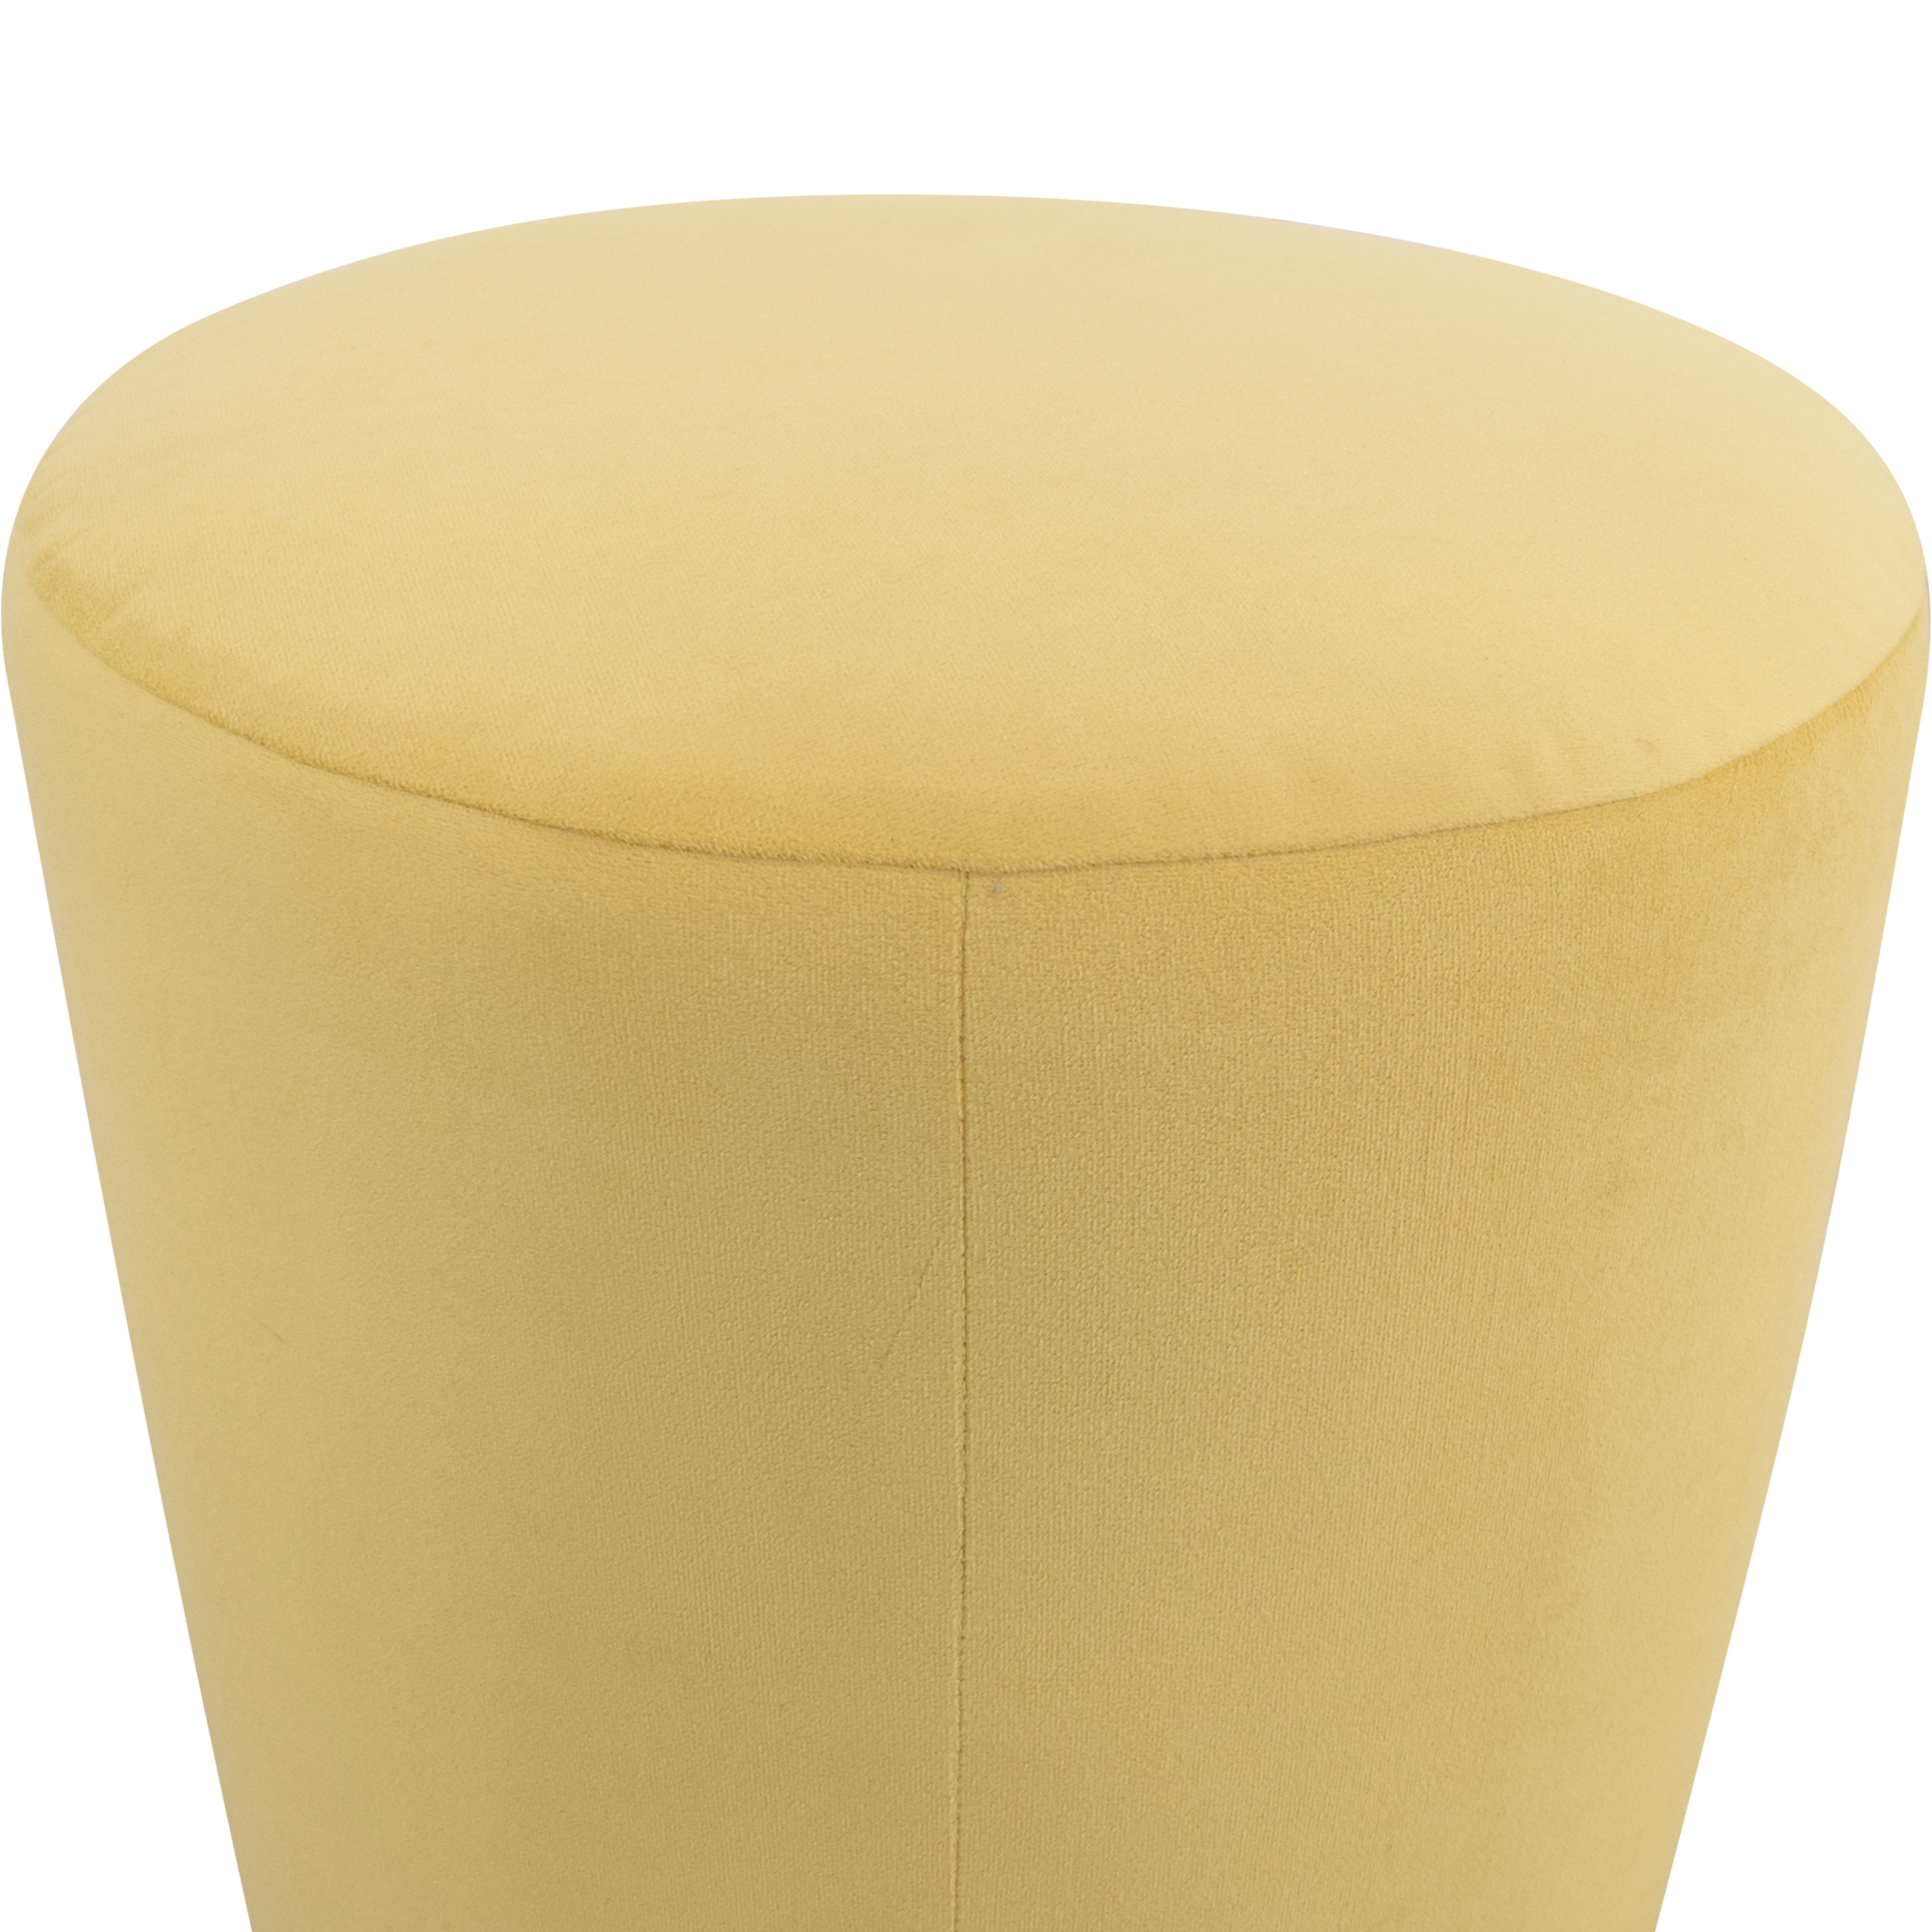 The Inside The Inside Drum Ottoman second hand